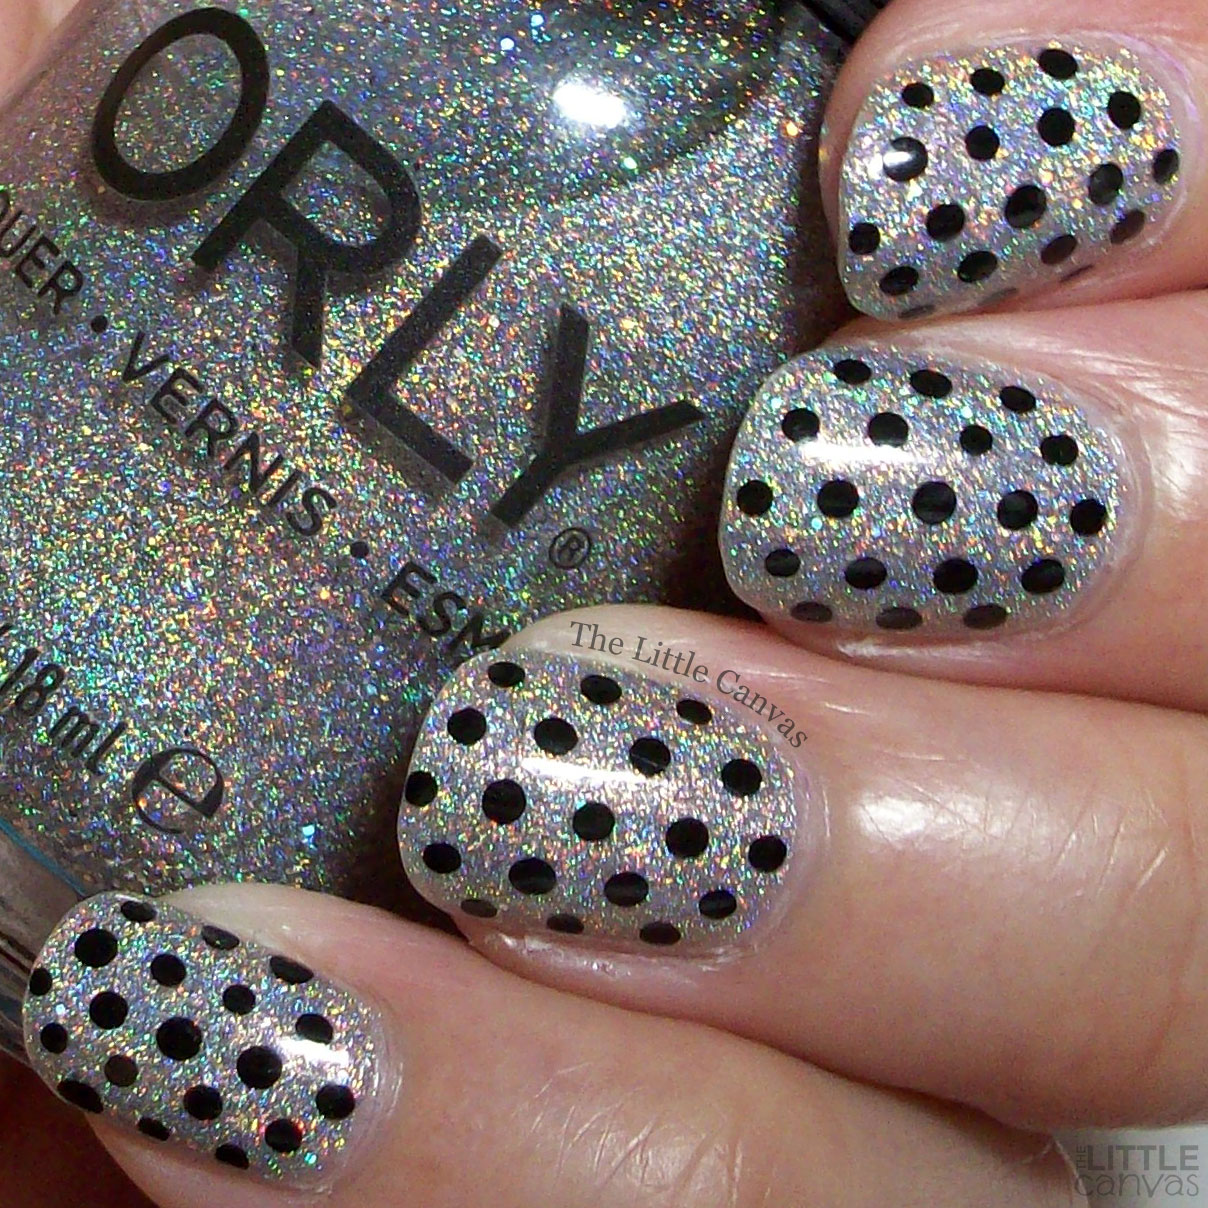 The One With the Polka Dots and ORLY Mirrorball - The Little Canvas